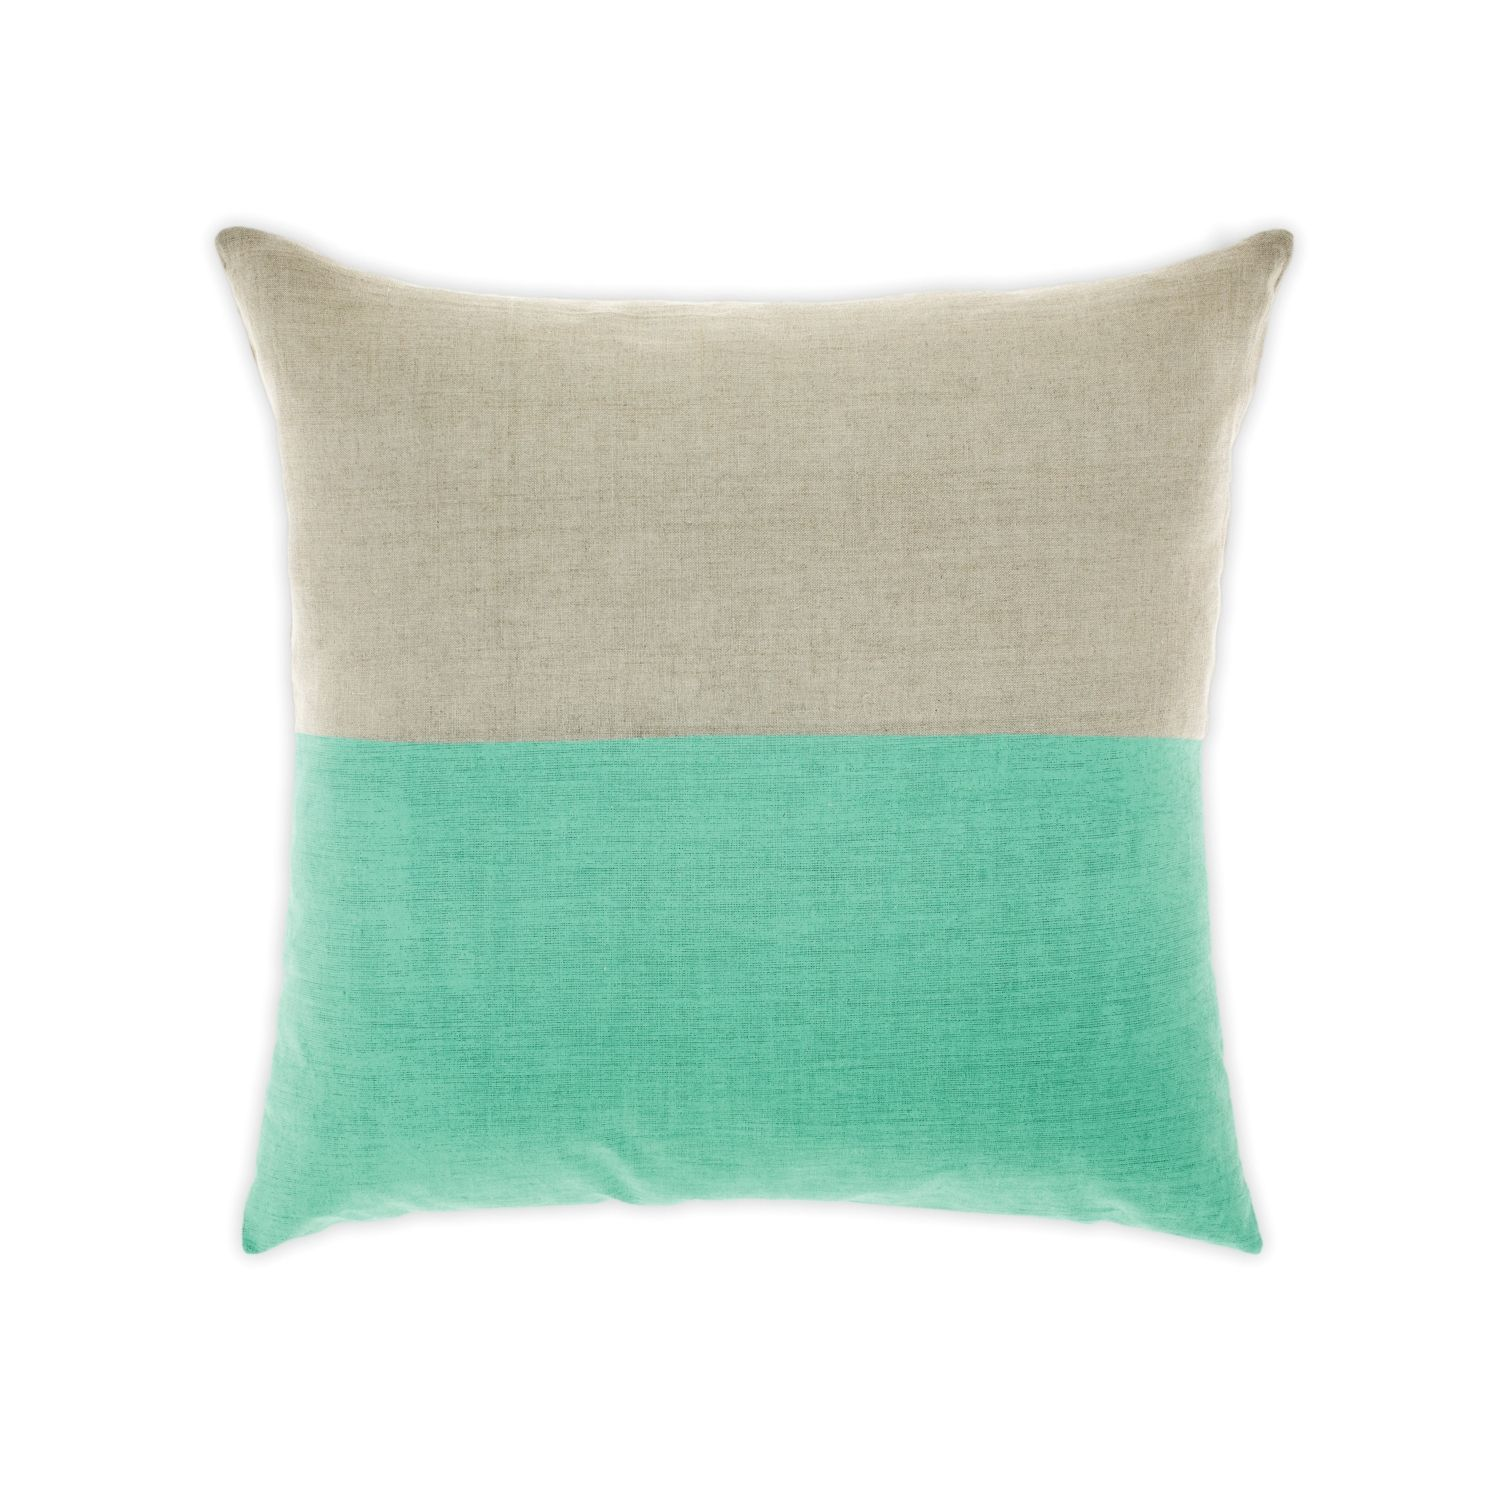 Aura Mint Dipped Cushion from Domayne Online Linen